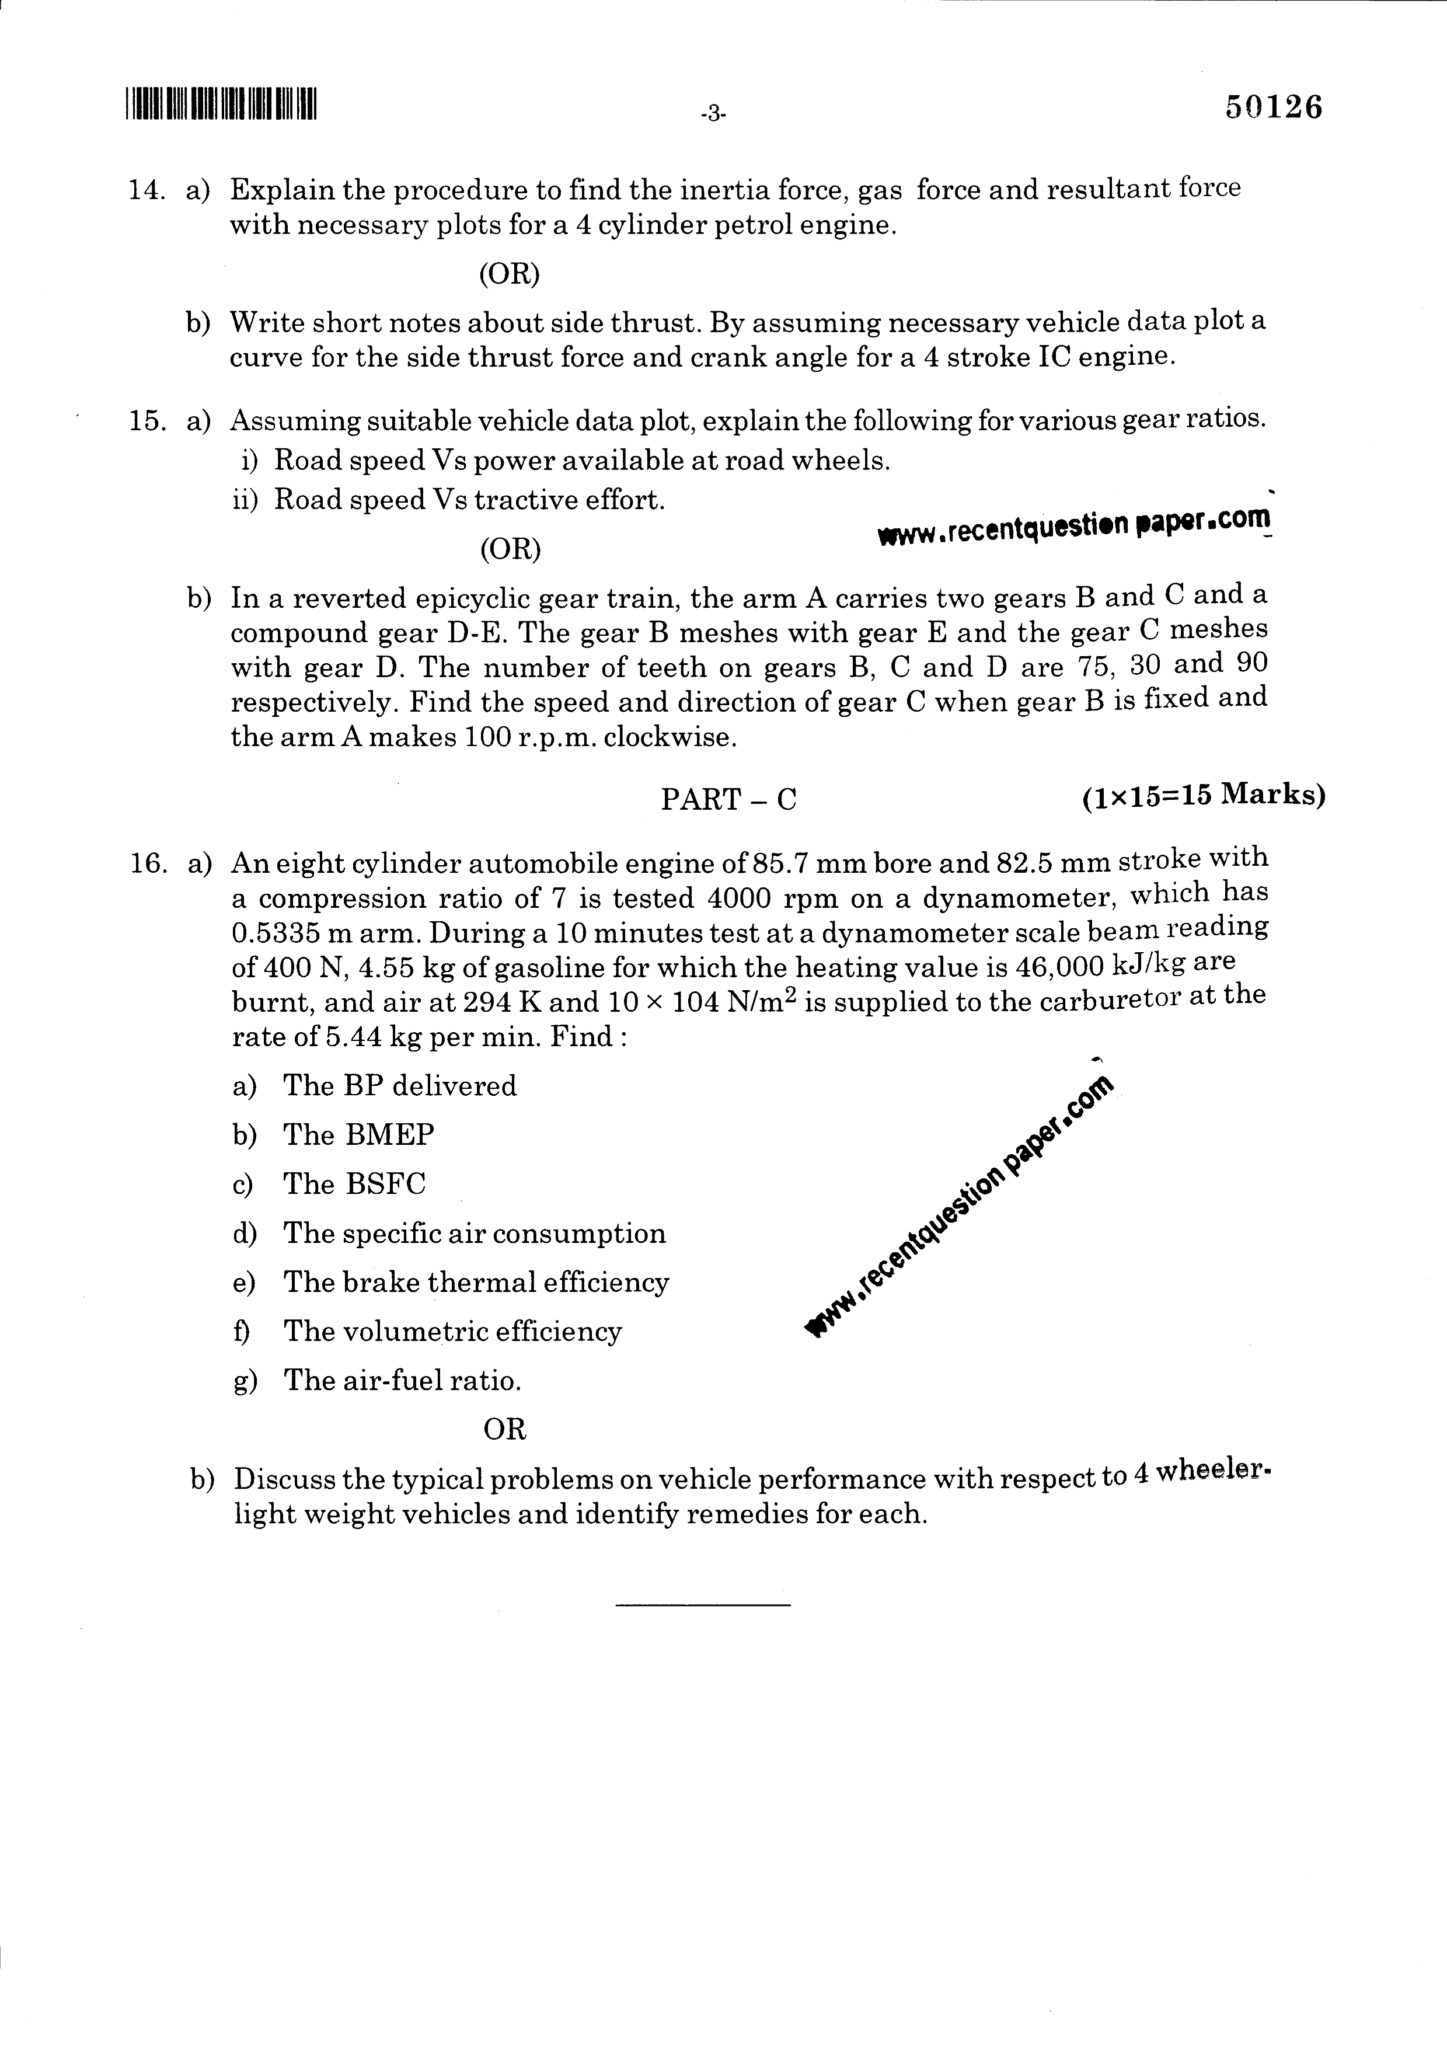 AT6503 Vehicle Design Data Characteristics Question Paper